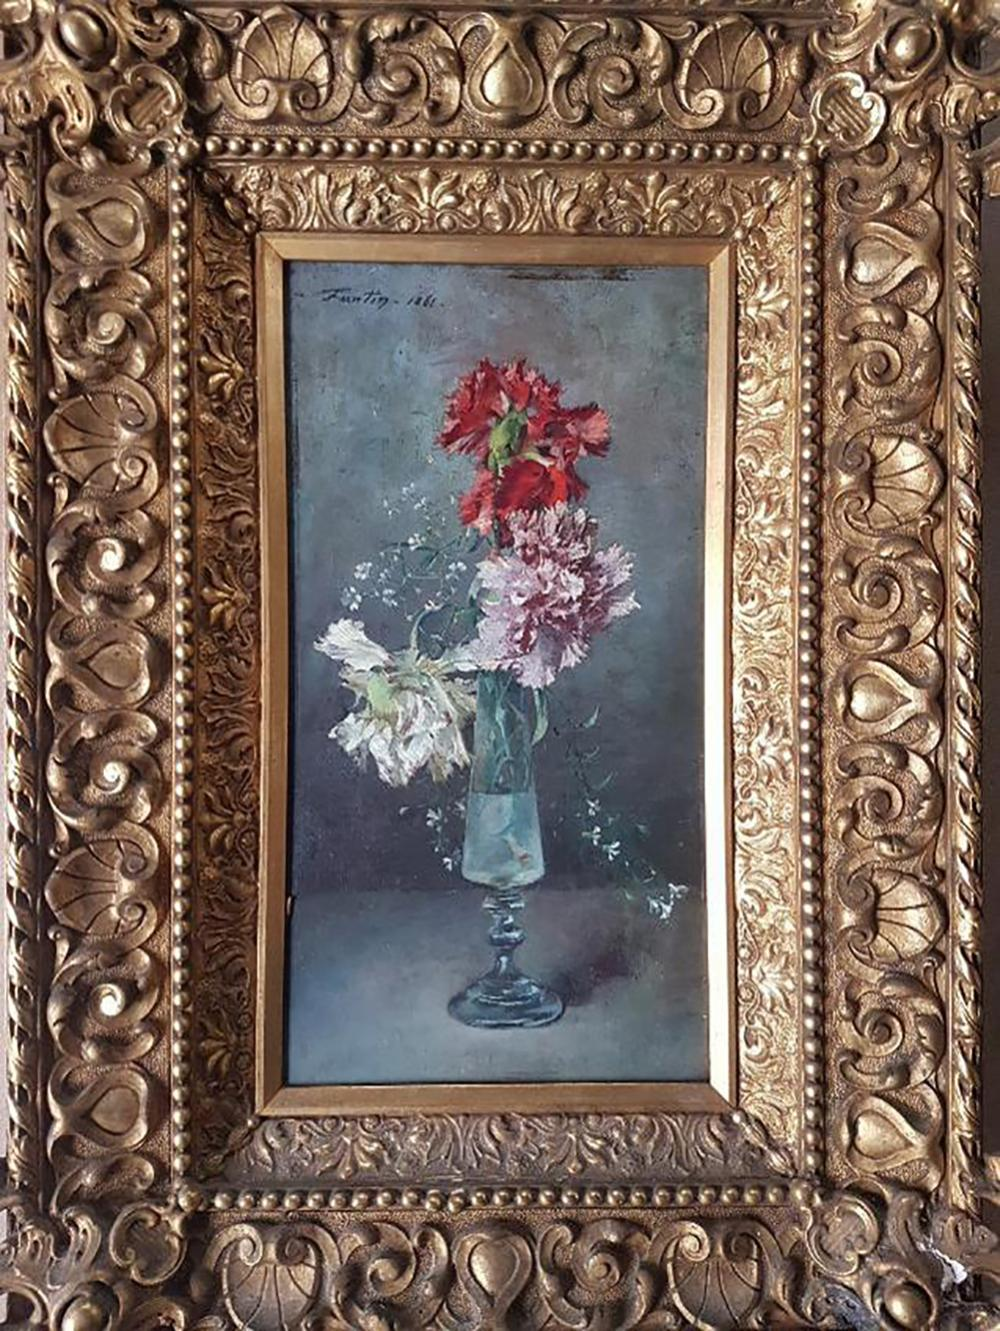 """Rare French Painting Henri Fantin-Latour, """"A Bouquet of Carnations"""" 1861   Oil on Wood"""